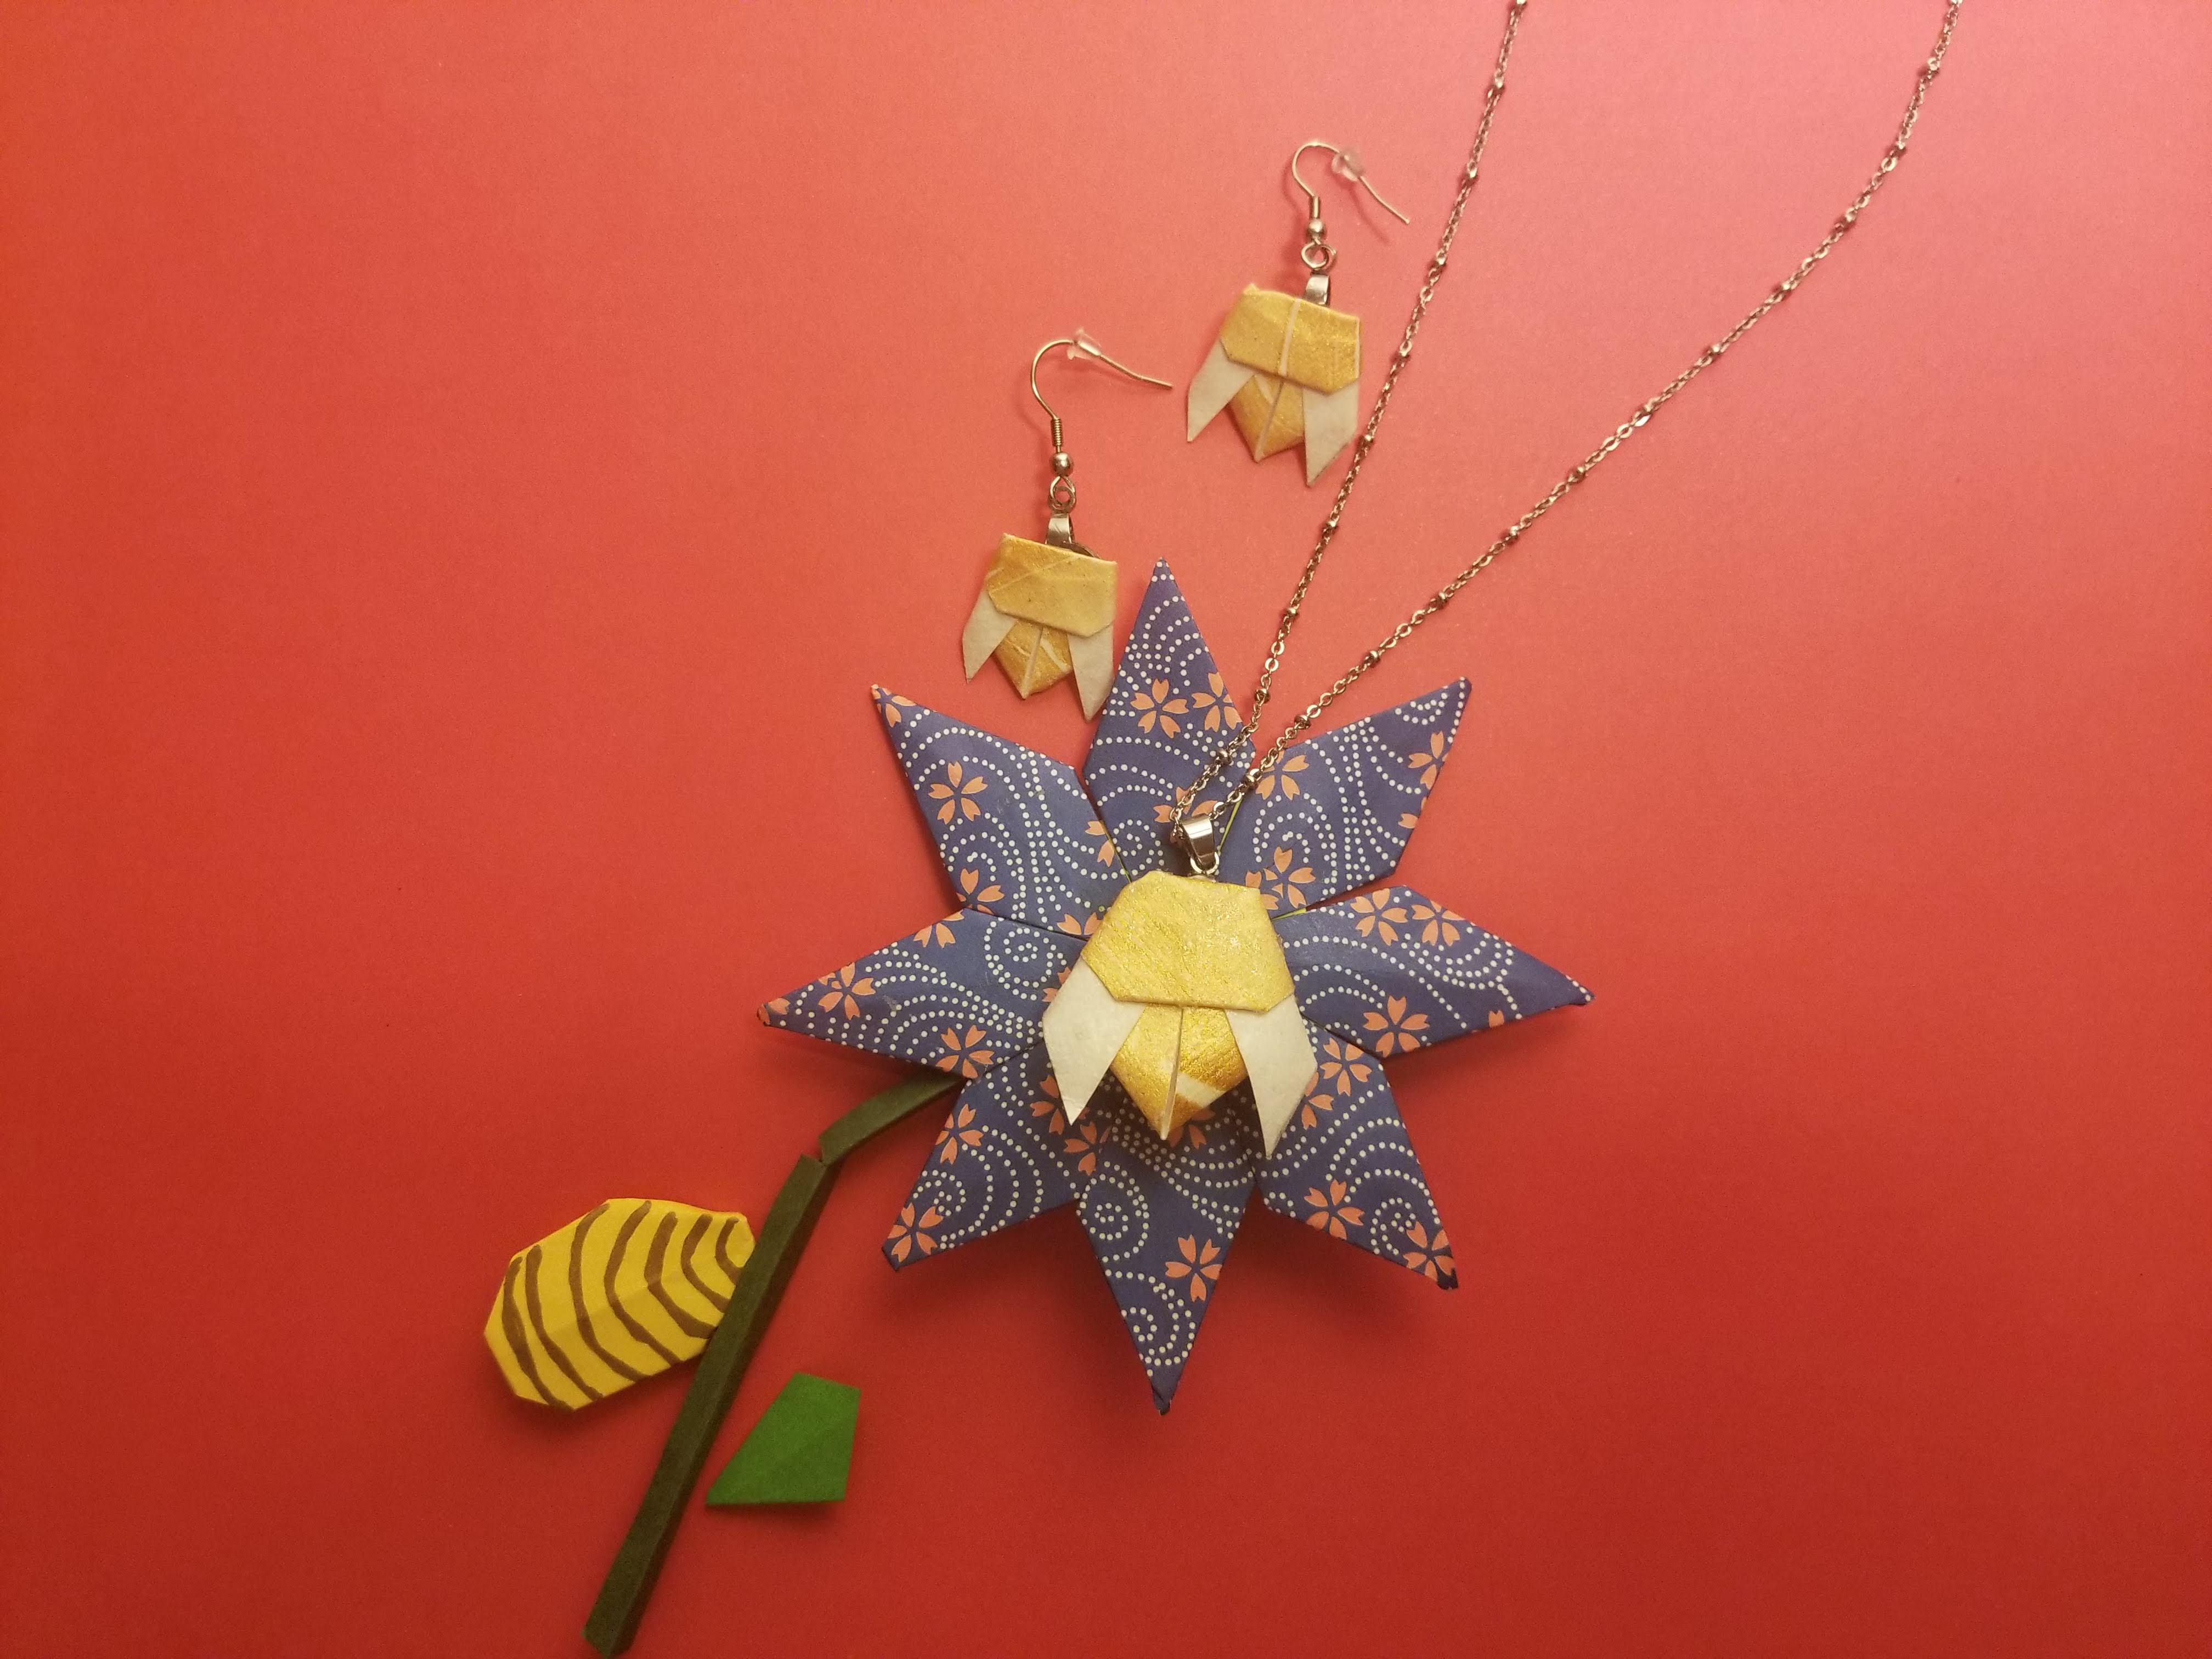 'The Bee' pendant with necklace and earrings making kit